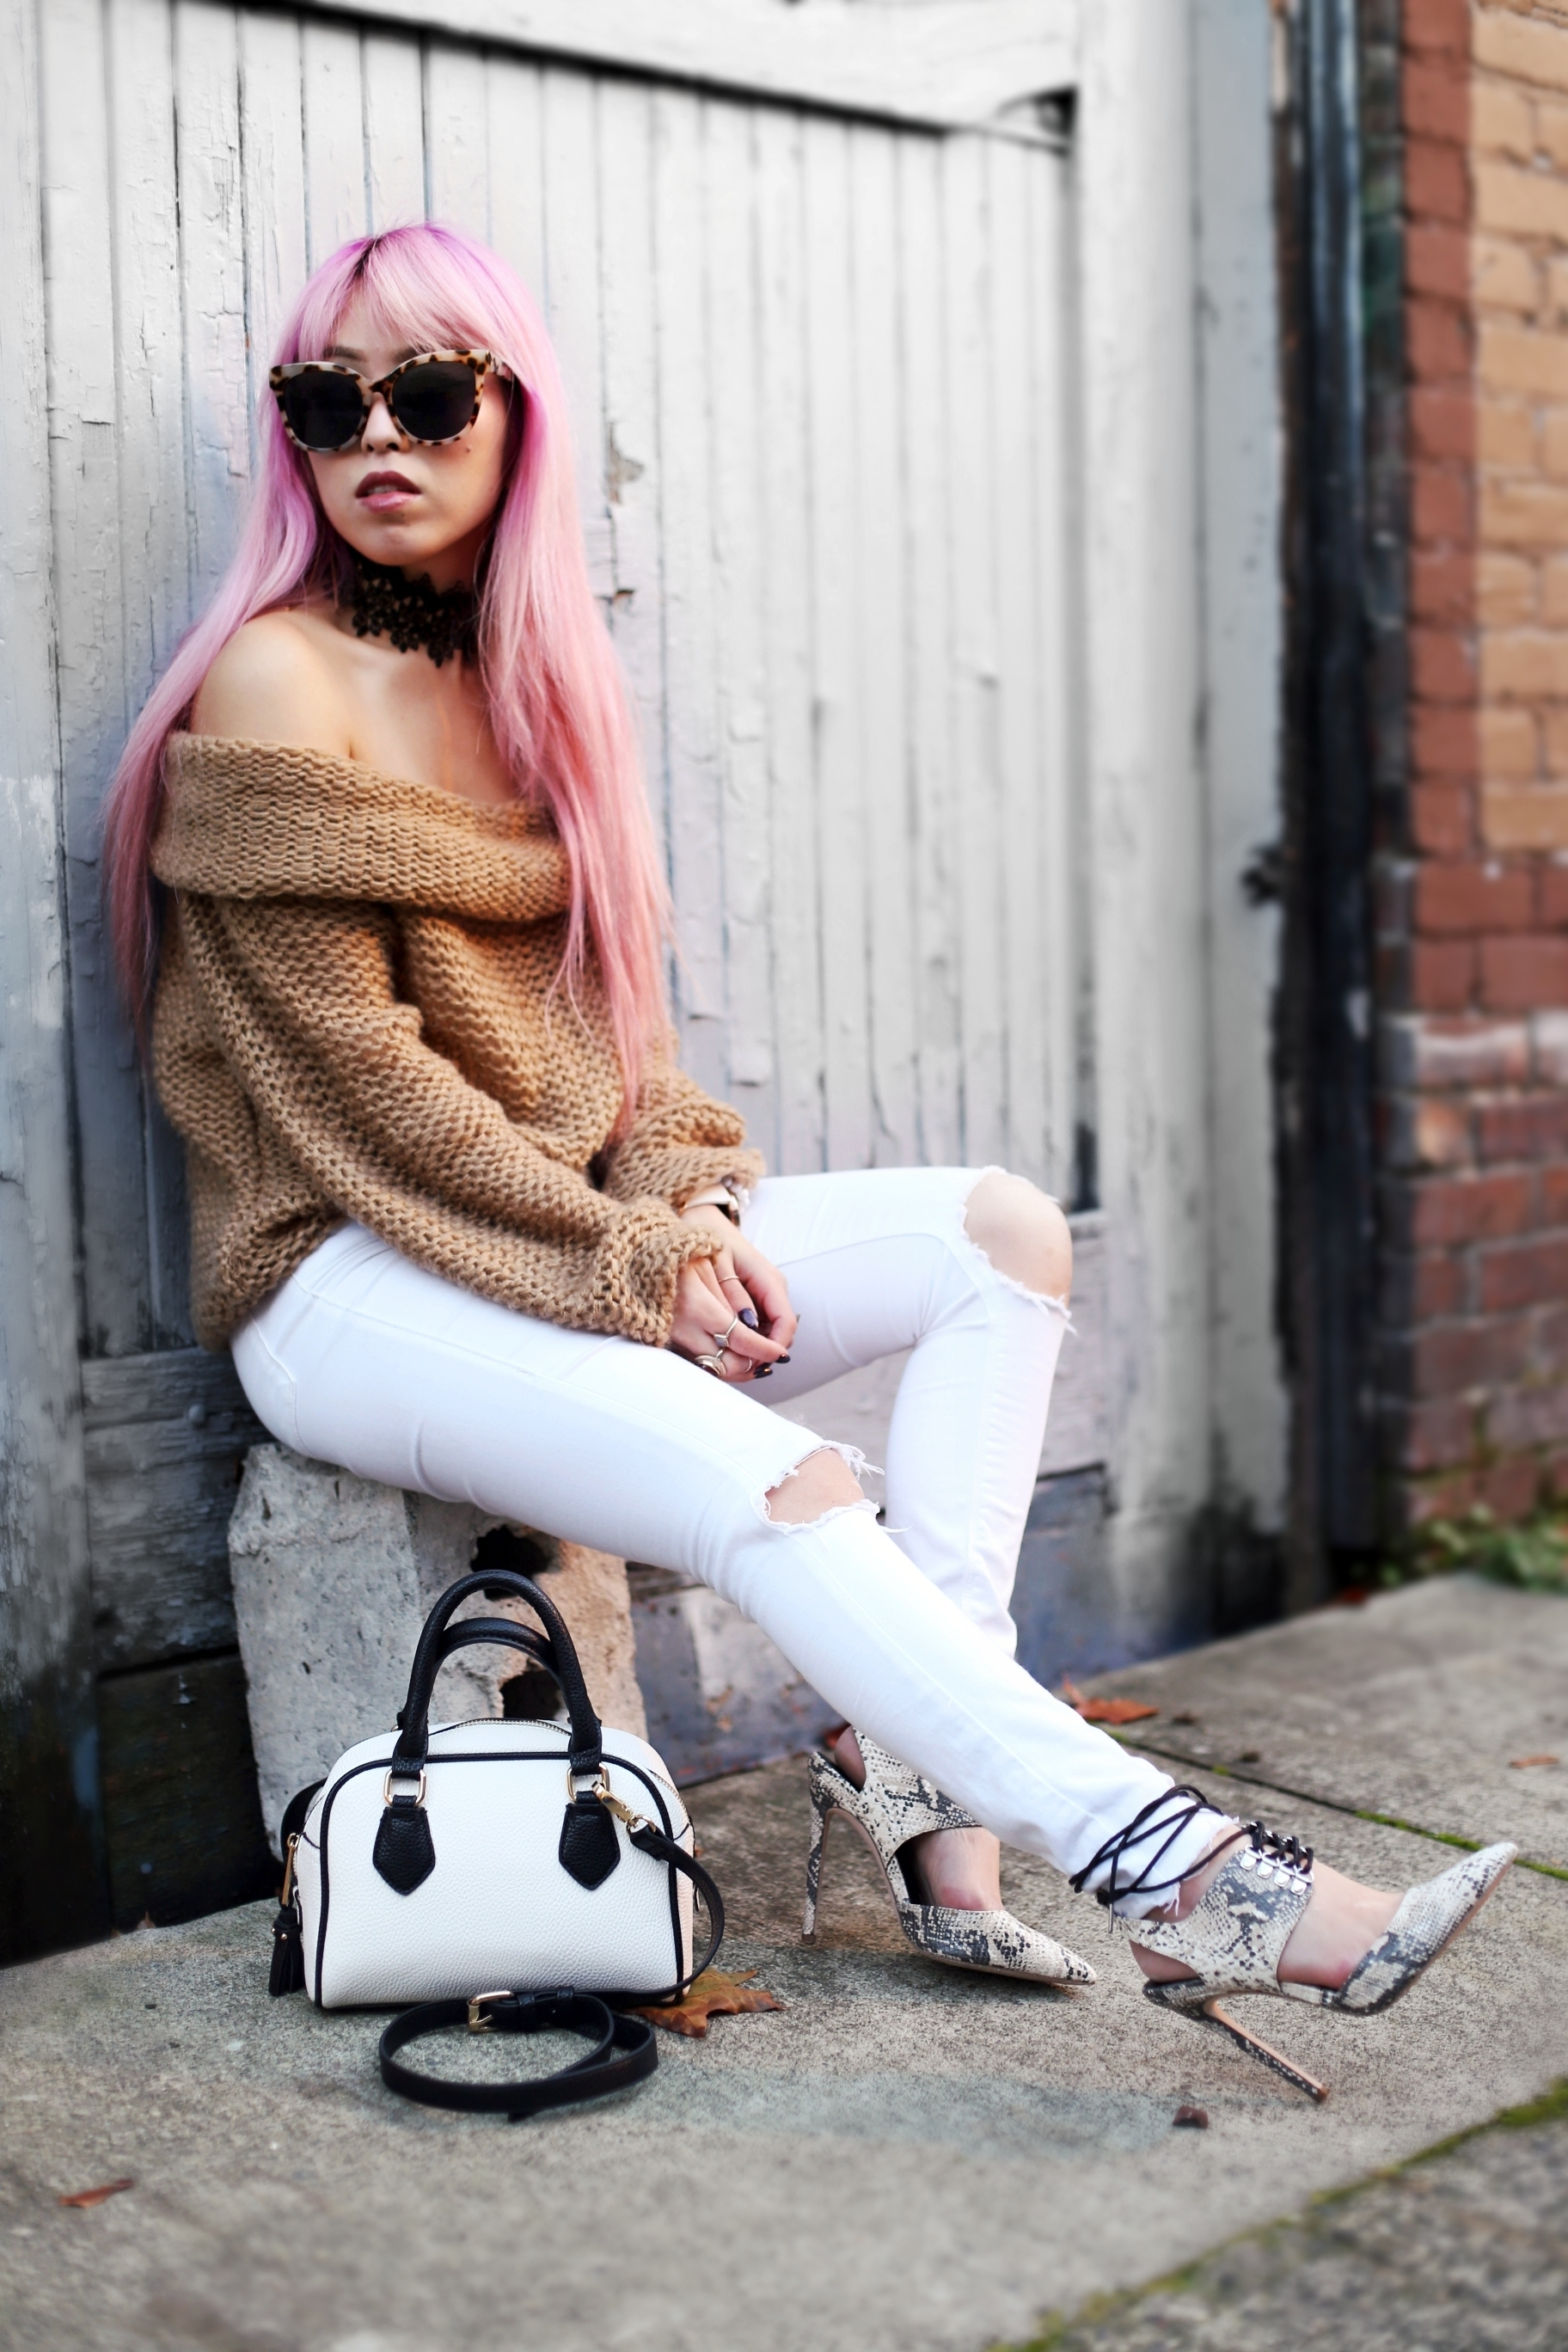 Urban Outfitters Sunglasses_Camel Off The Shoulder Sweater_TOPSHOP white jeans_ZARA Bag_ASOS Snake Skin Heels_Shop Dixi Lace Choker_Aika's Love Closet_Seattle Fashion Blogger_Japanese_Pink Hair_Colored Hair 6